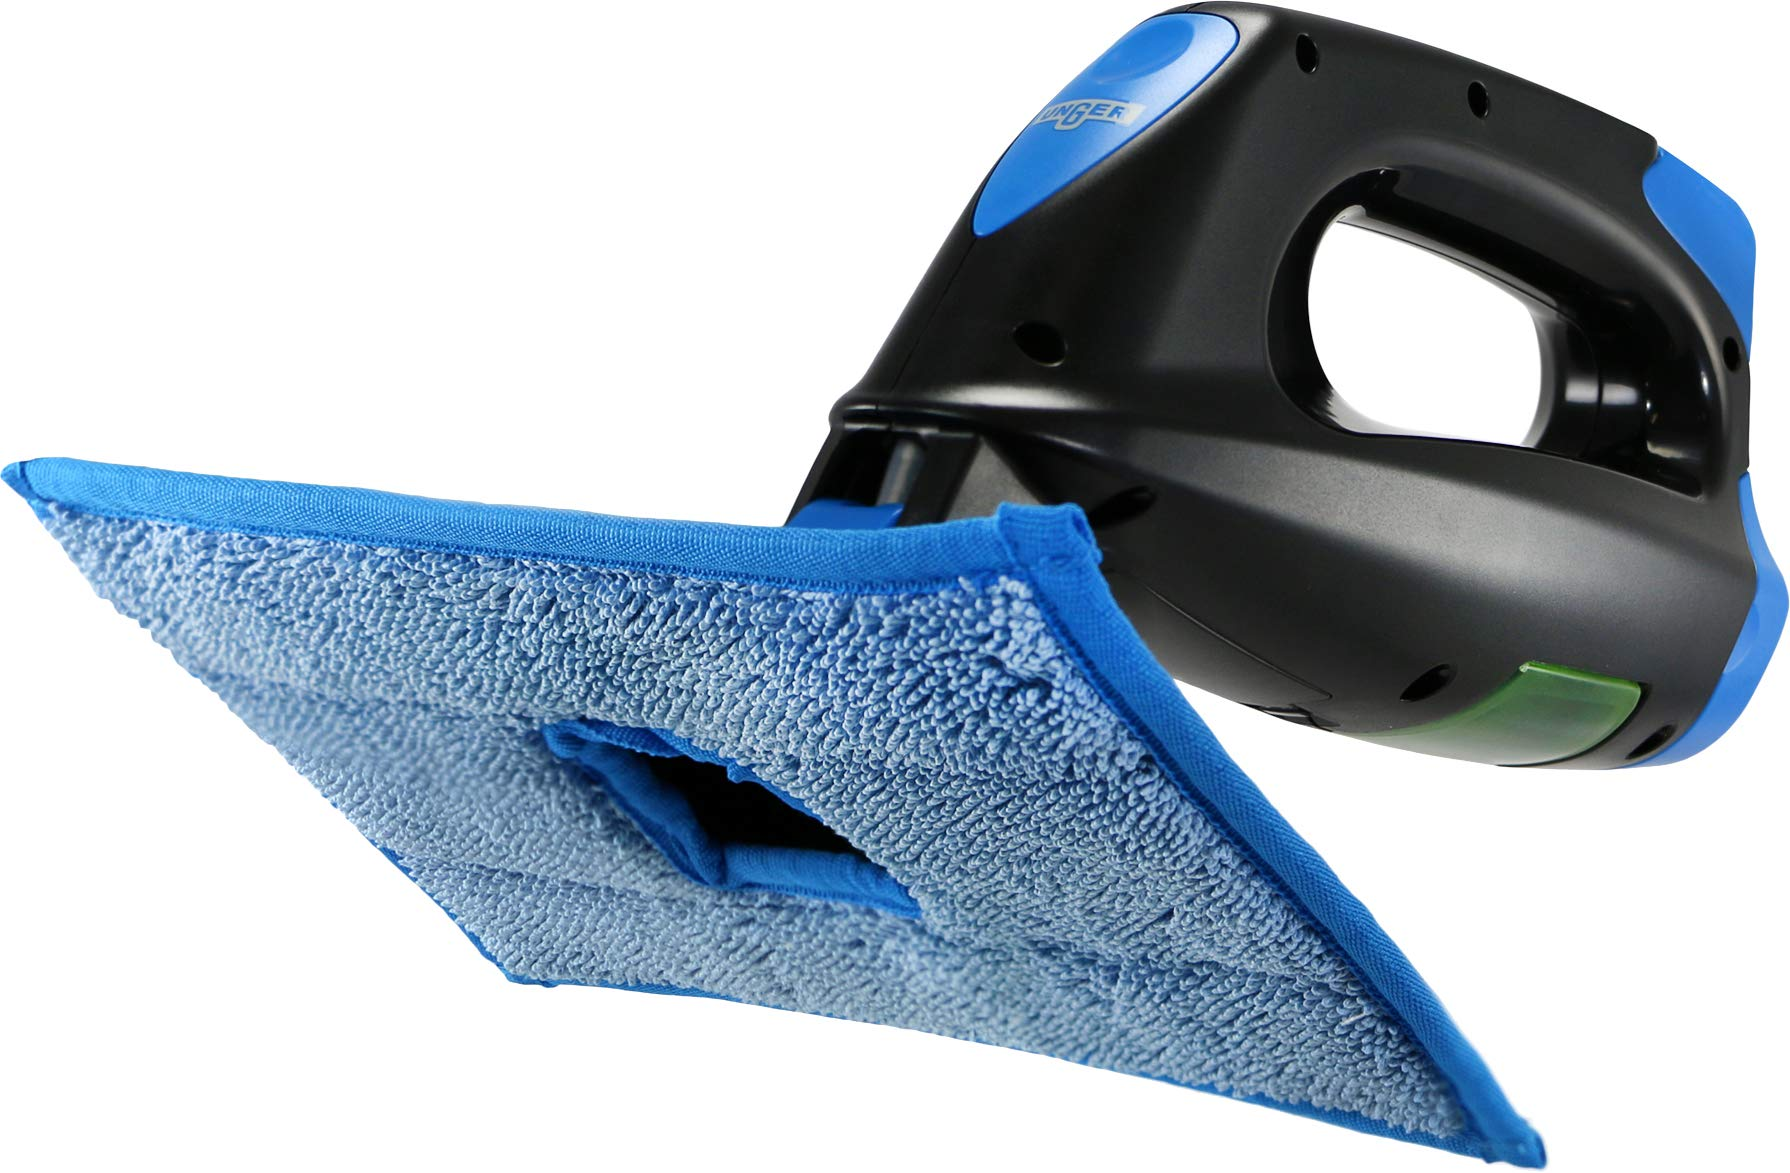 Unger CleanXpress 3-in-1 Multi-Surface Cleaning Tool - Sprays, Cleans, Dries